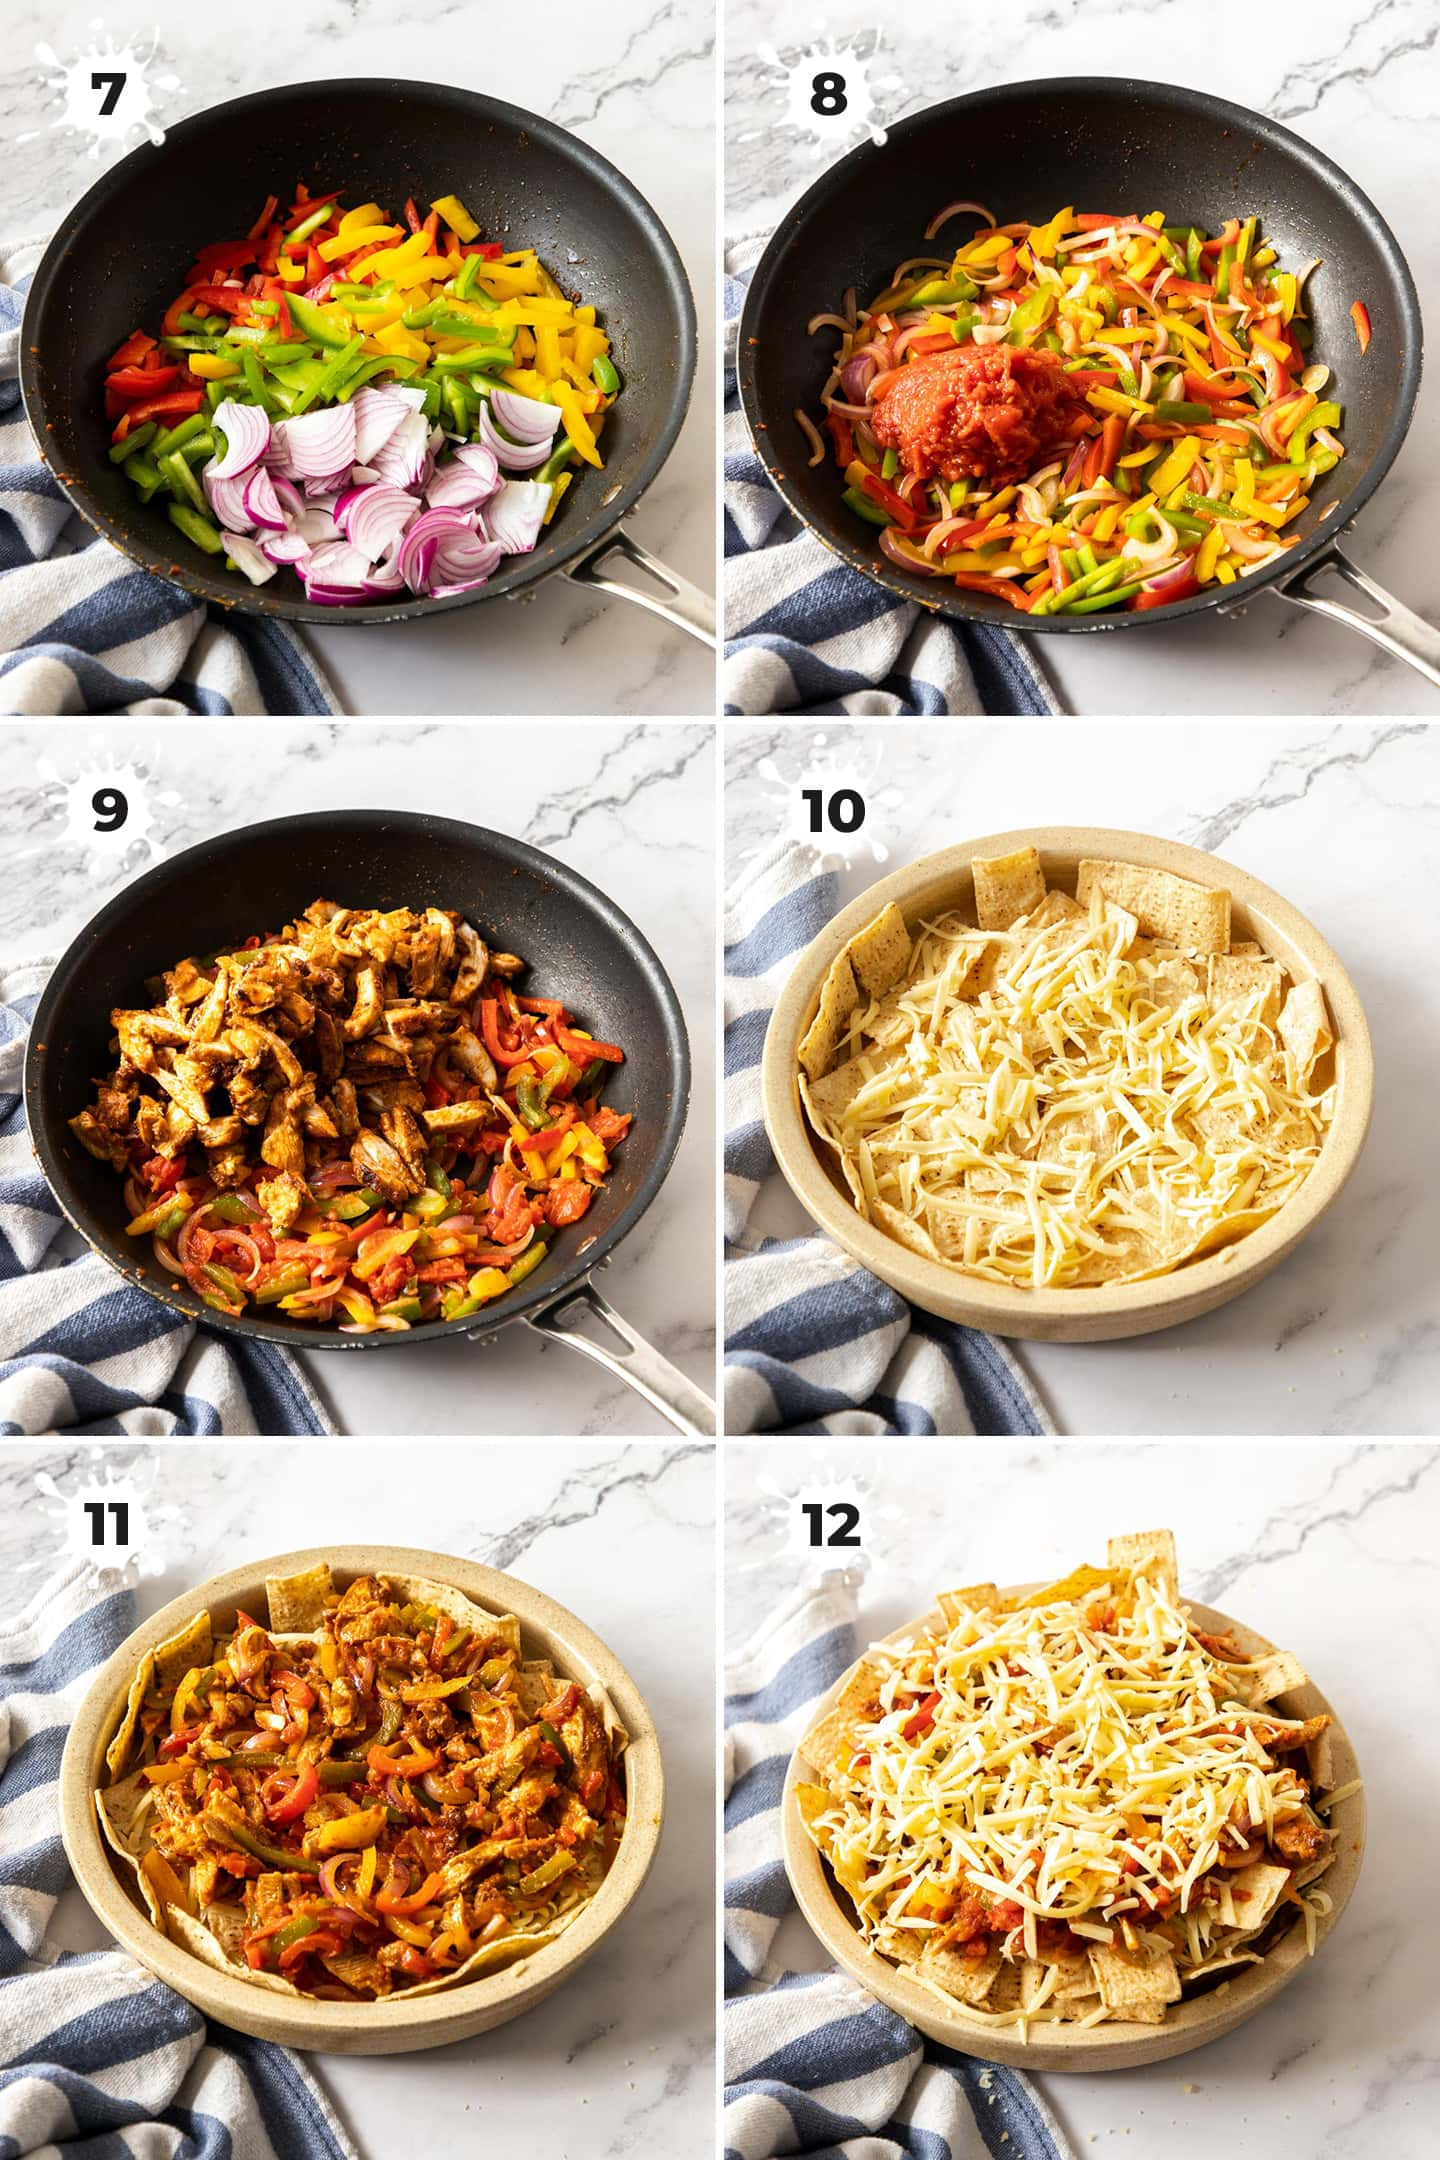 6 images showing cooking veggies in a pan and layering up nachos in a dish